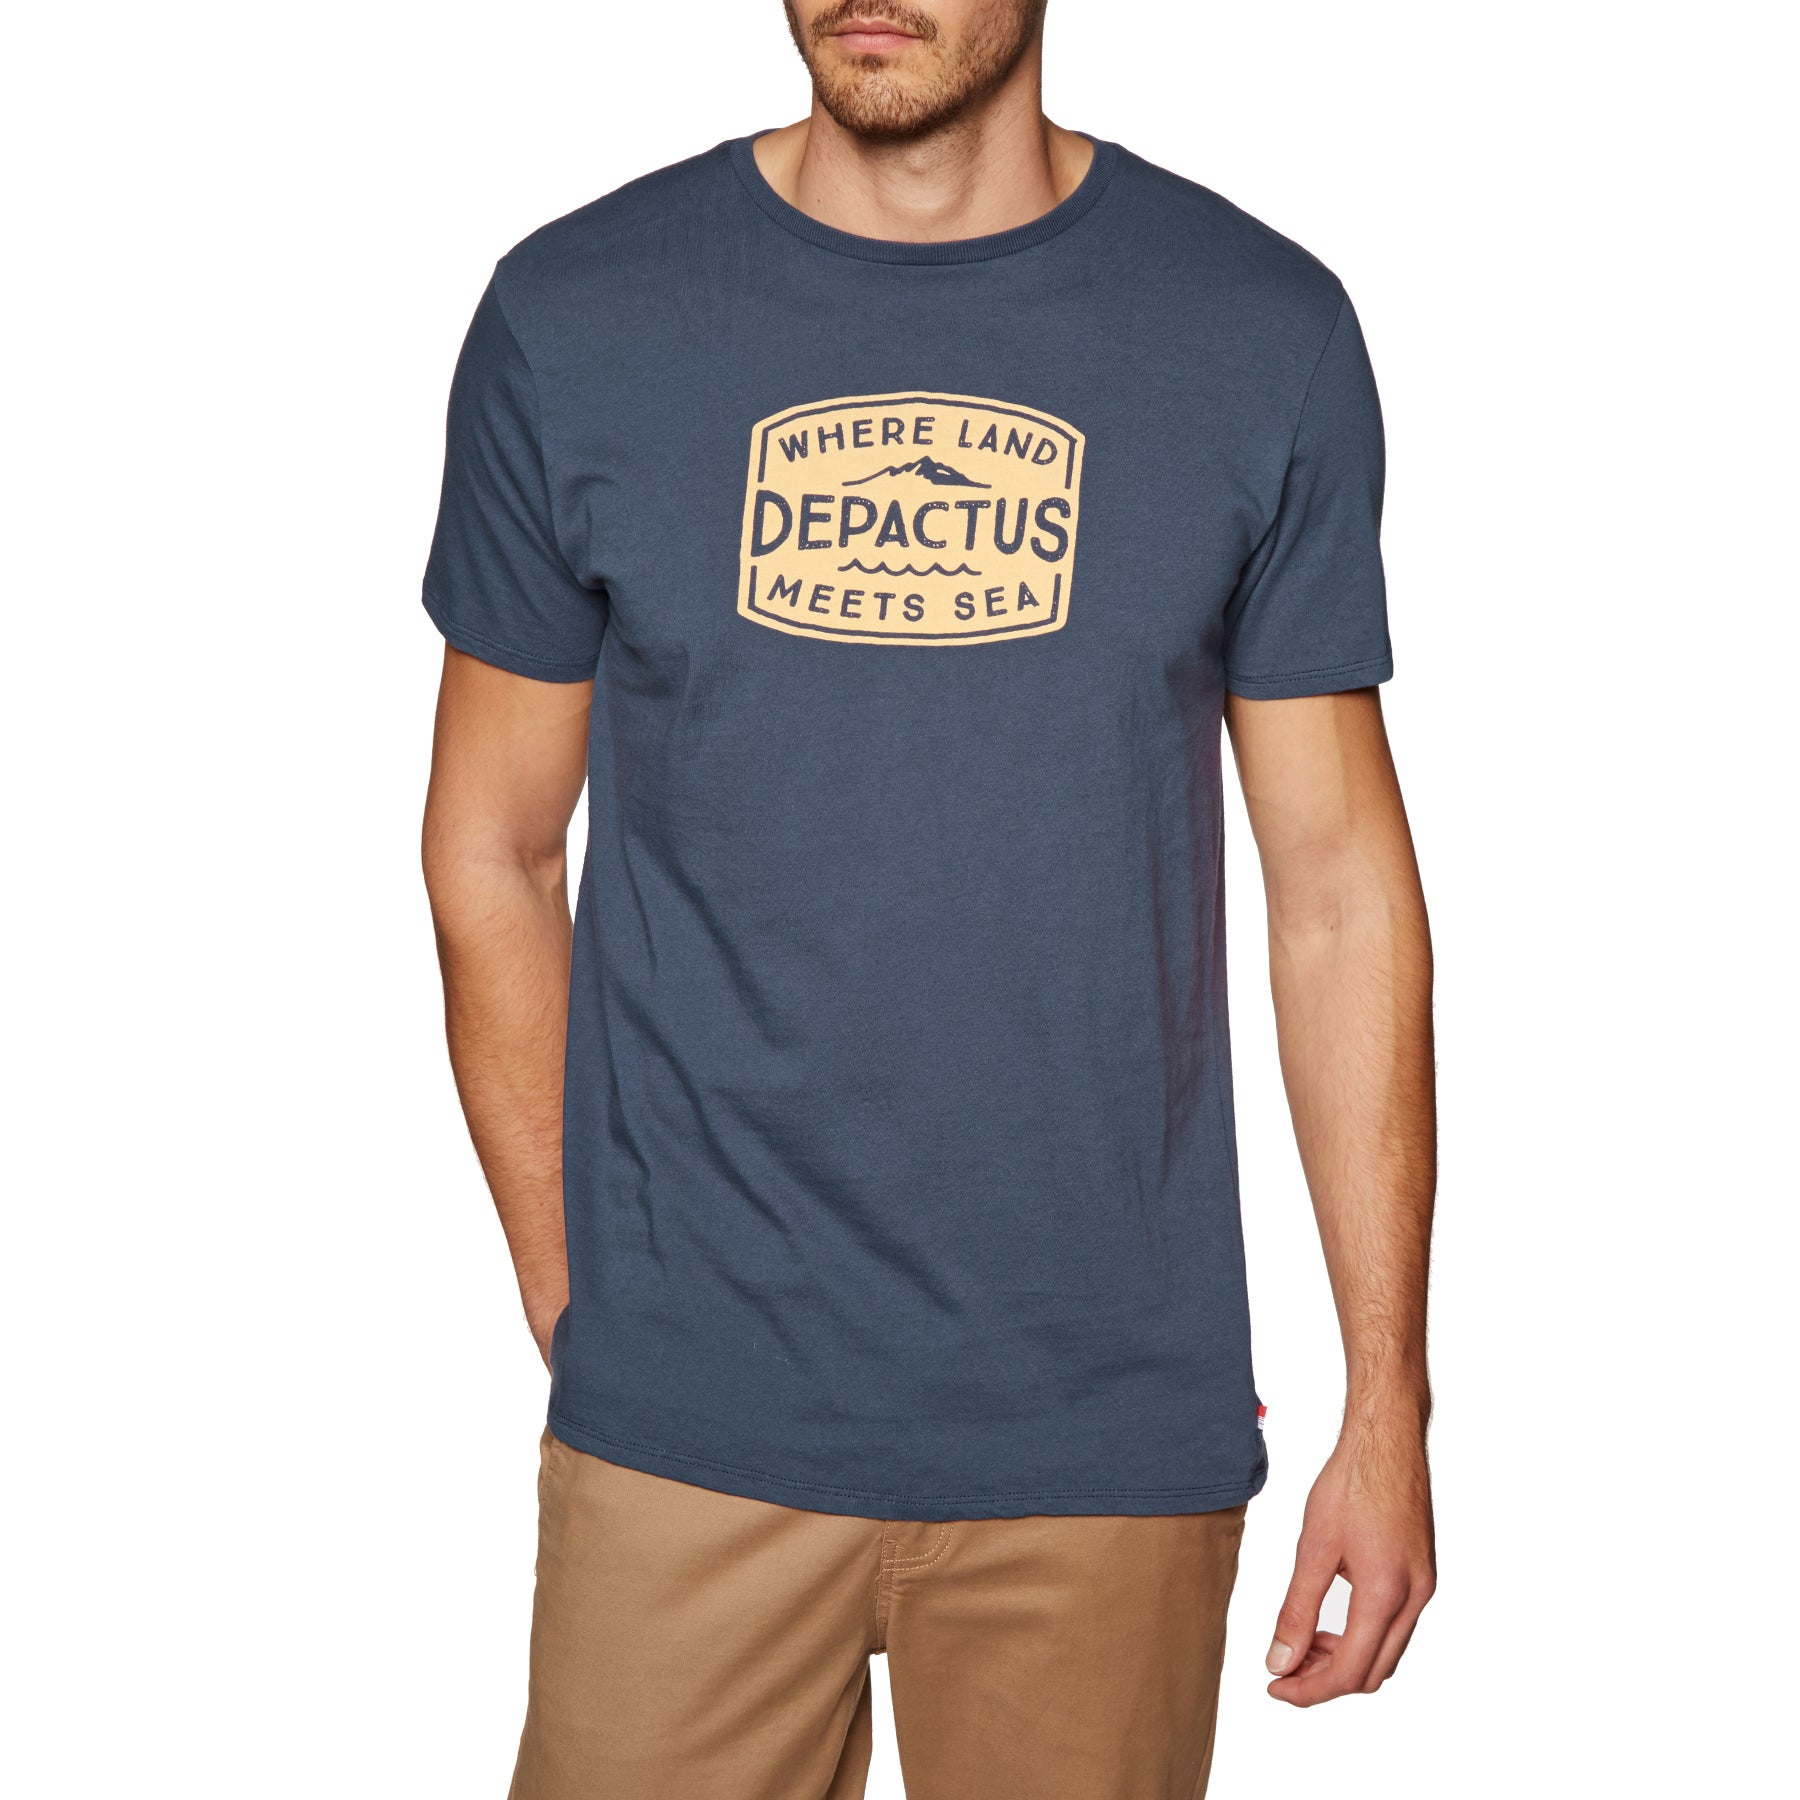 Depactus Roadstead Mens Short Sleeve T-Shirt